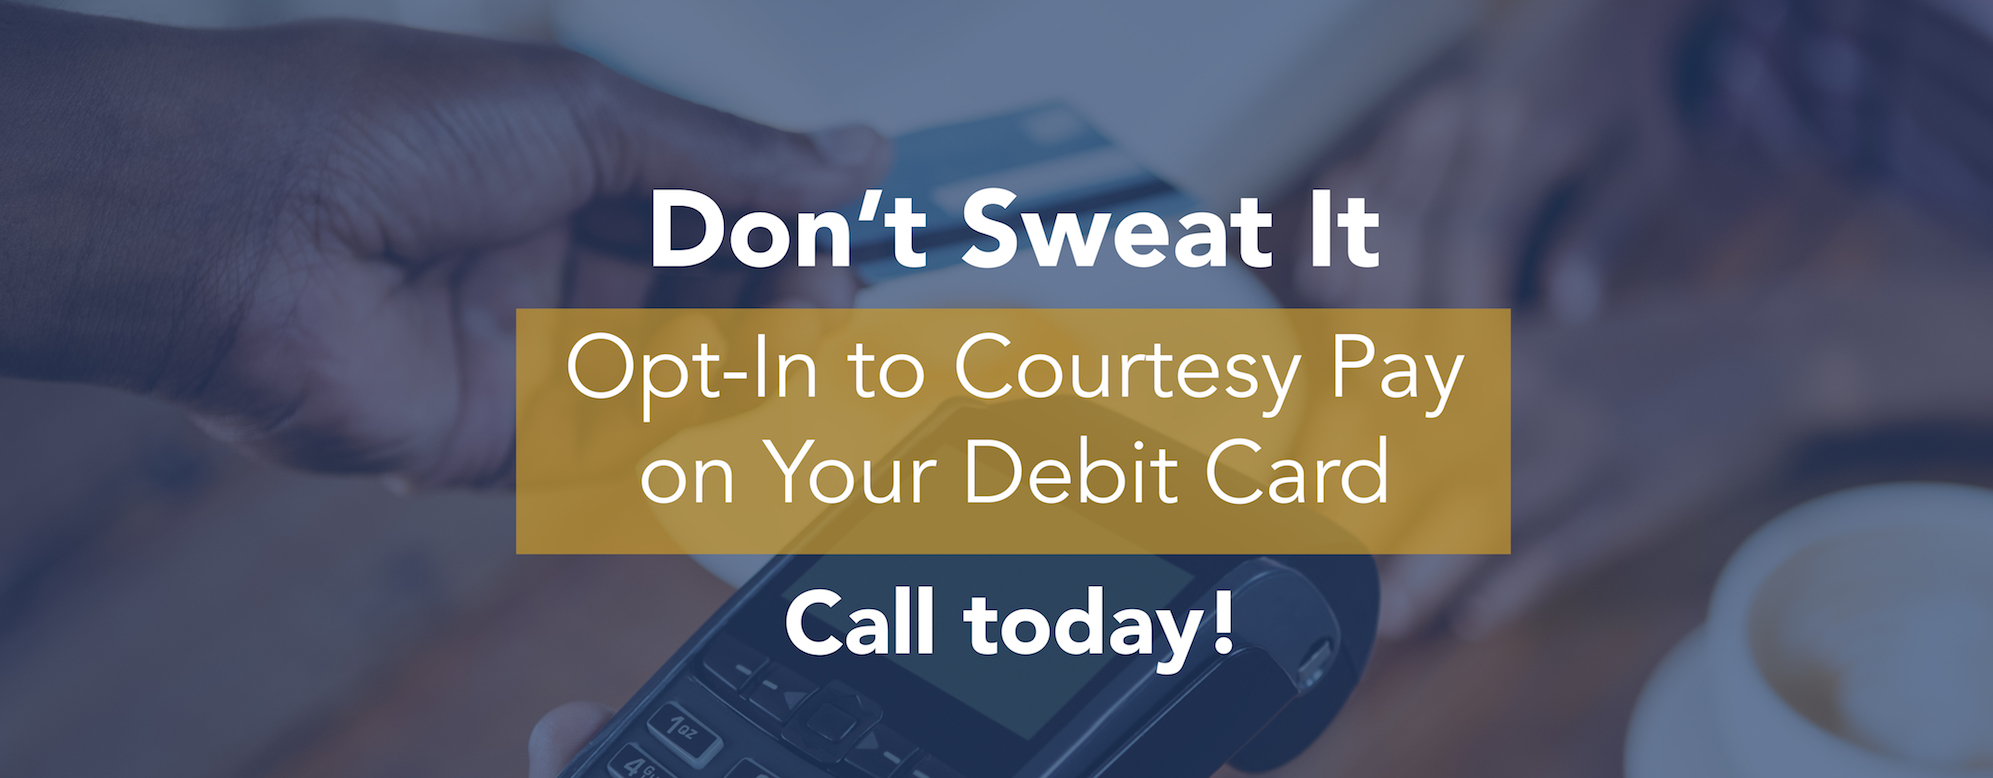 Don't sweat it! Opt in to courtesy pay on your debit card